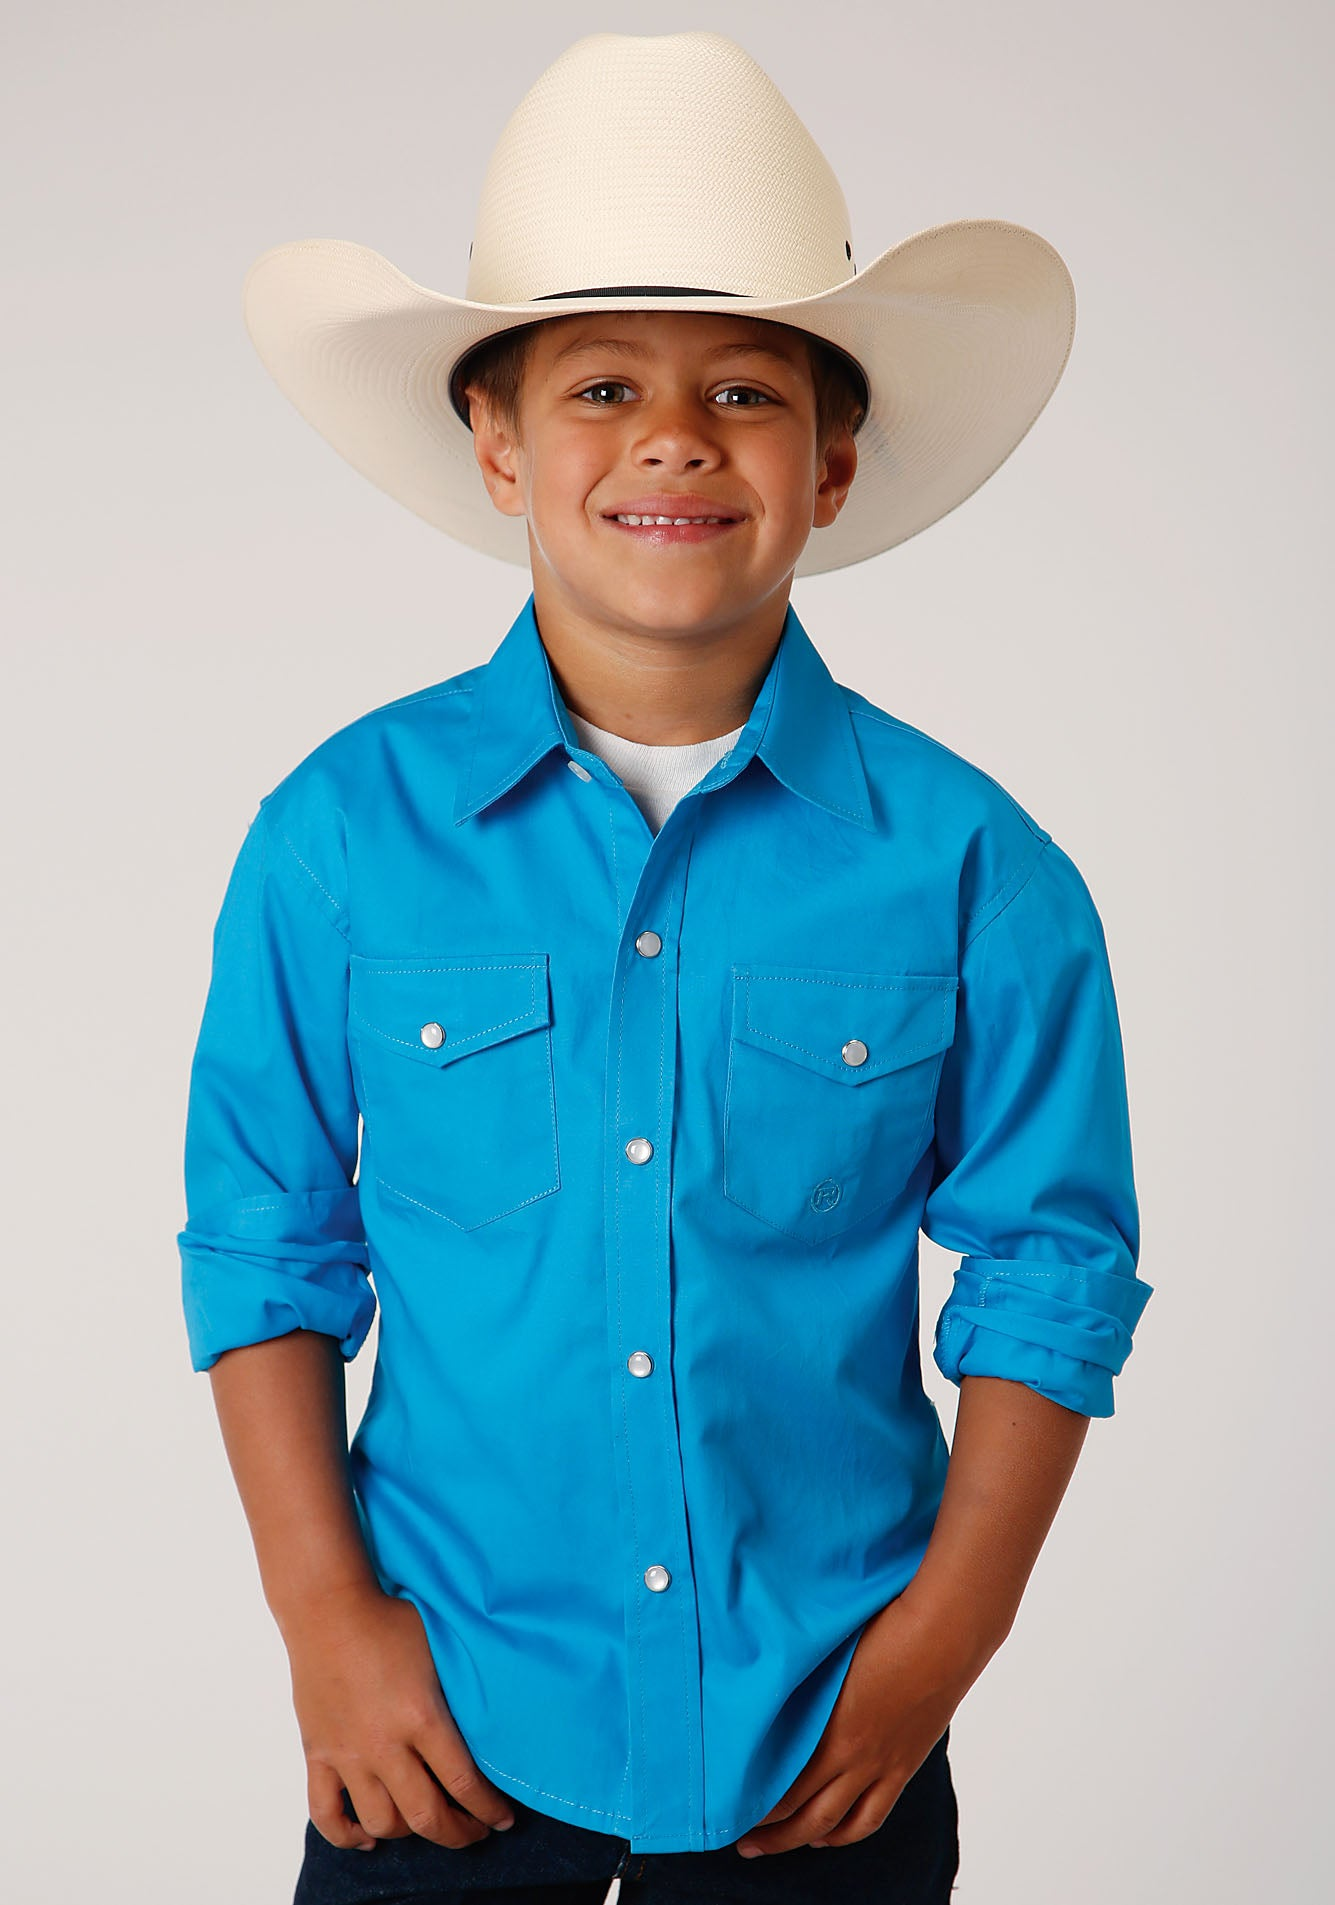 ROPER BOYS BLUE 00068 SOLID POPLIN - TURQUOISE BOYS AMARILLO COLLECTION- OASIS LONG SLEEVE